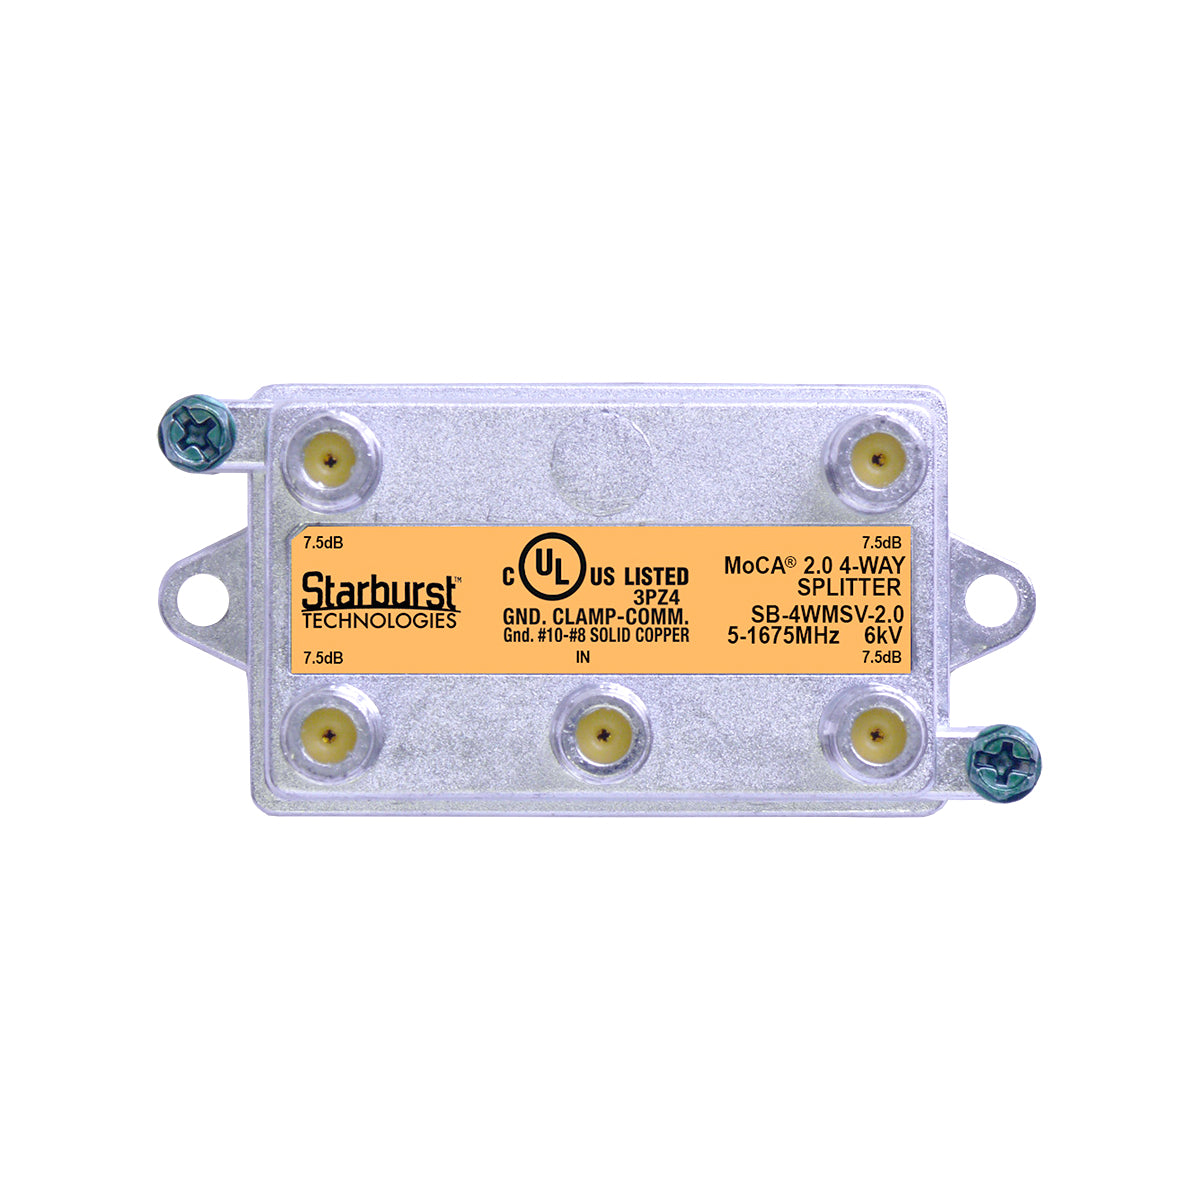 SB-4WMSV-2.0 MoCA 2.0 Splitter 4 Way Vertical 5-1675MHz Wide Band